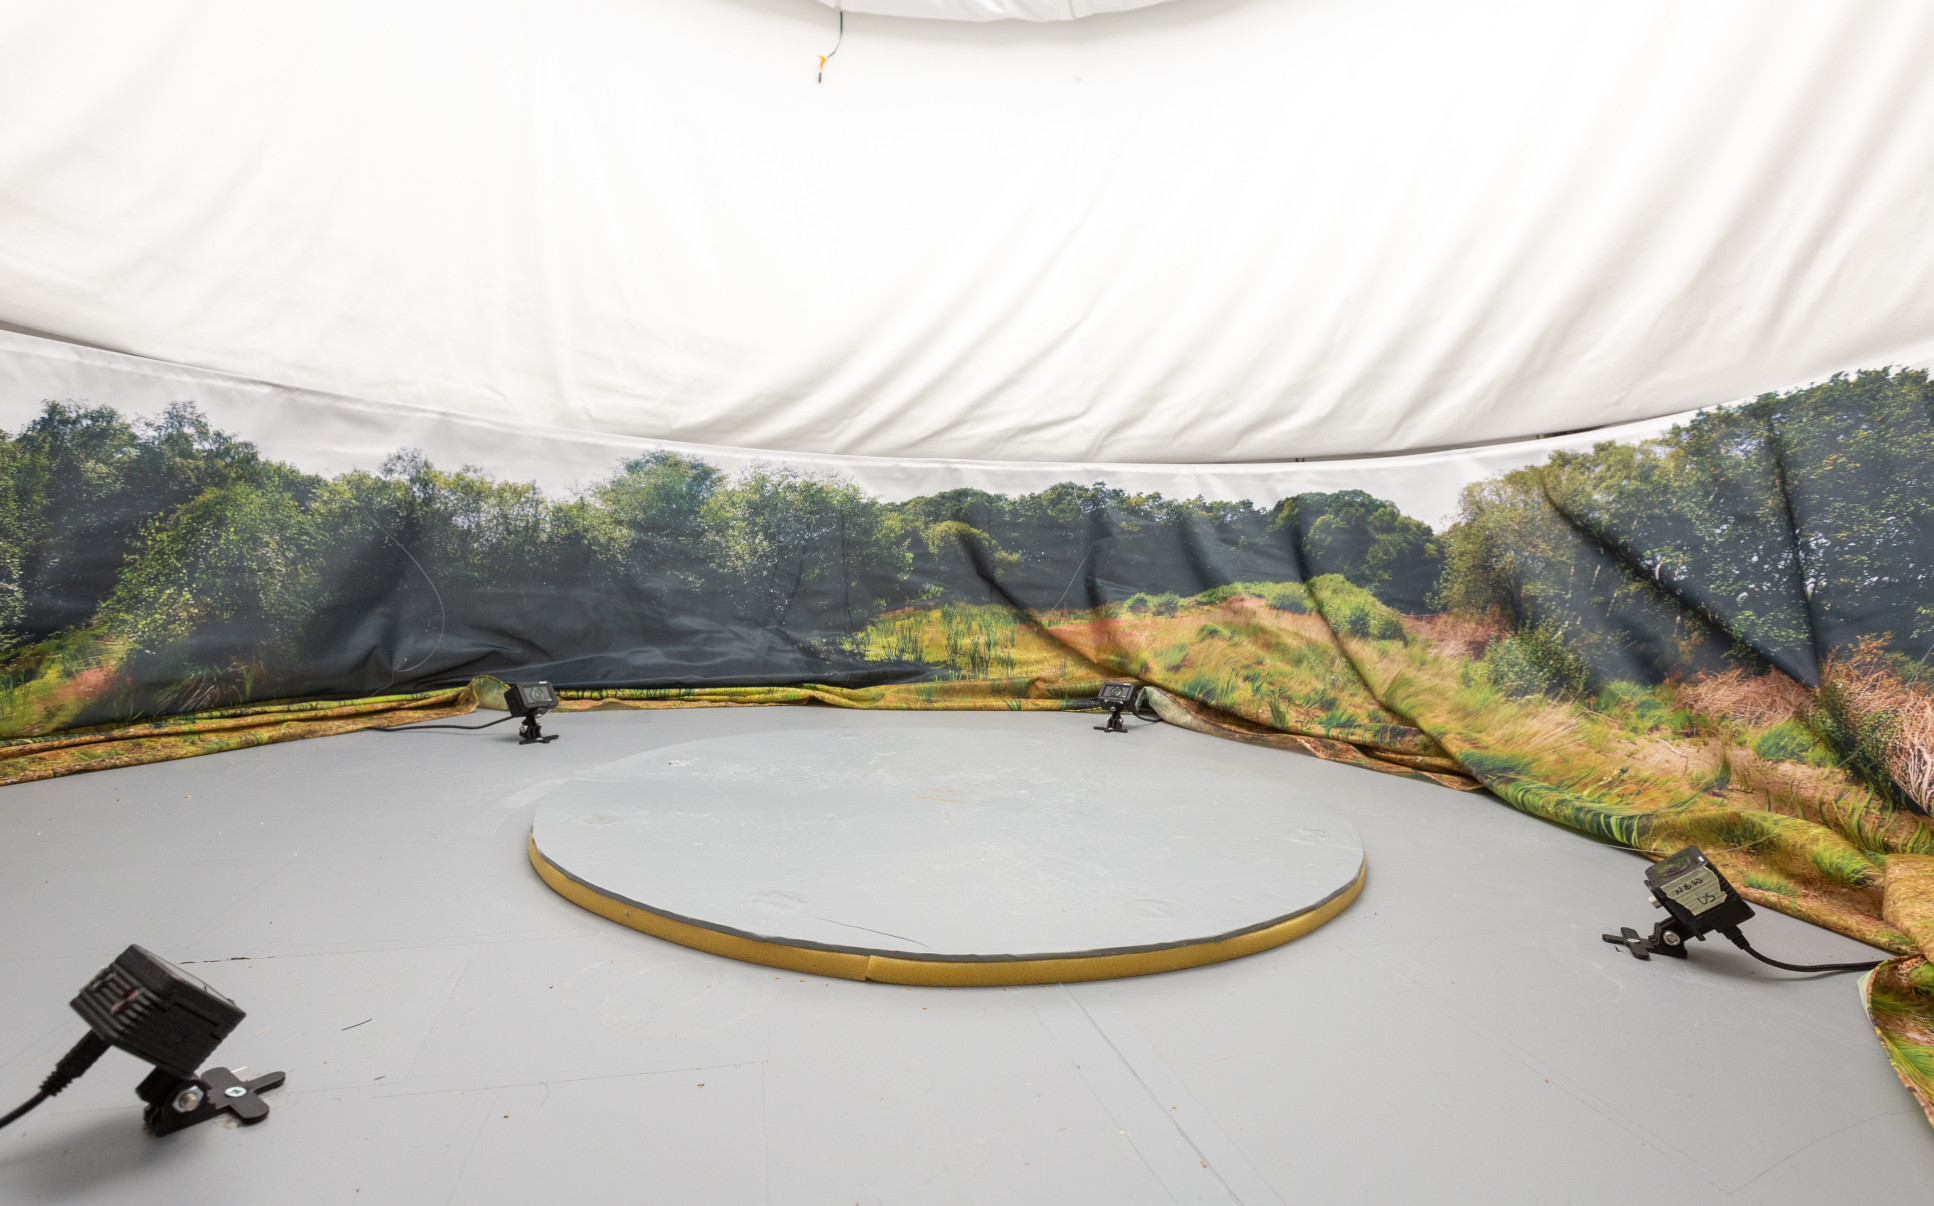 Photo of the dragonfly flight arena - a circular area with sides